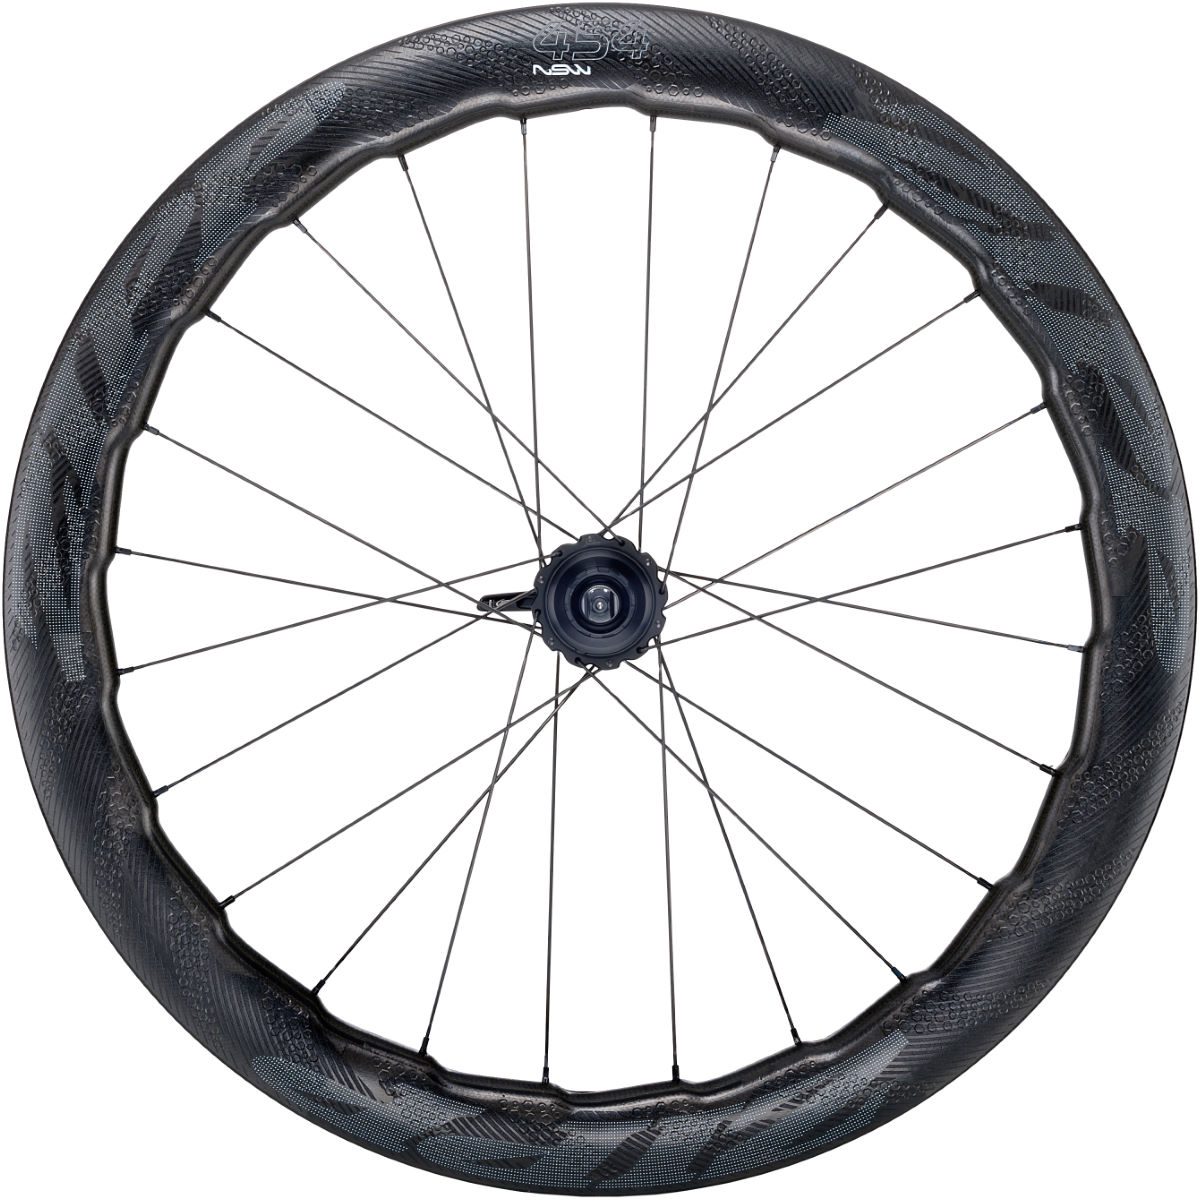 ComprarZipp 454 NSW Carbon Clincher Disc Brake Rear Wheel - Ruedas traseras